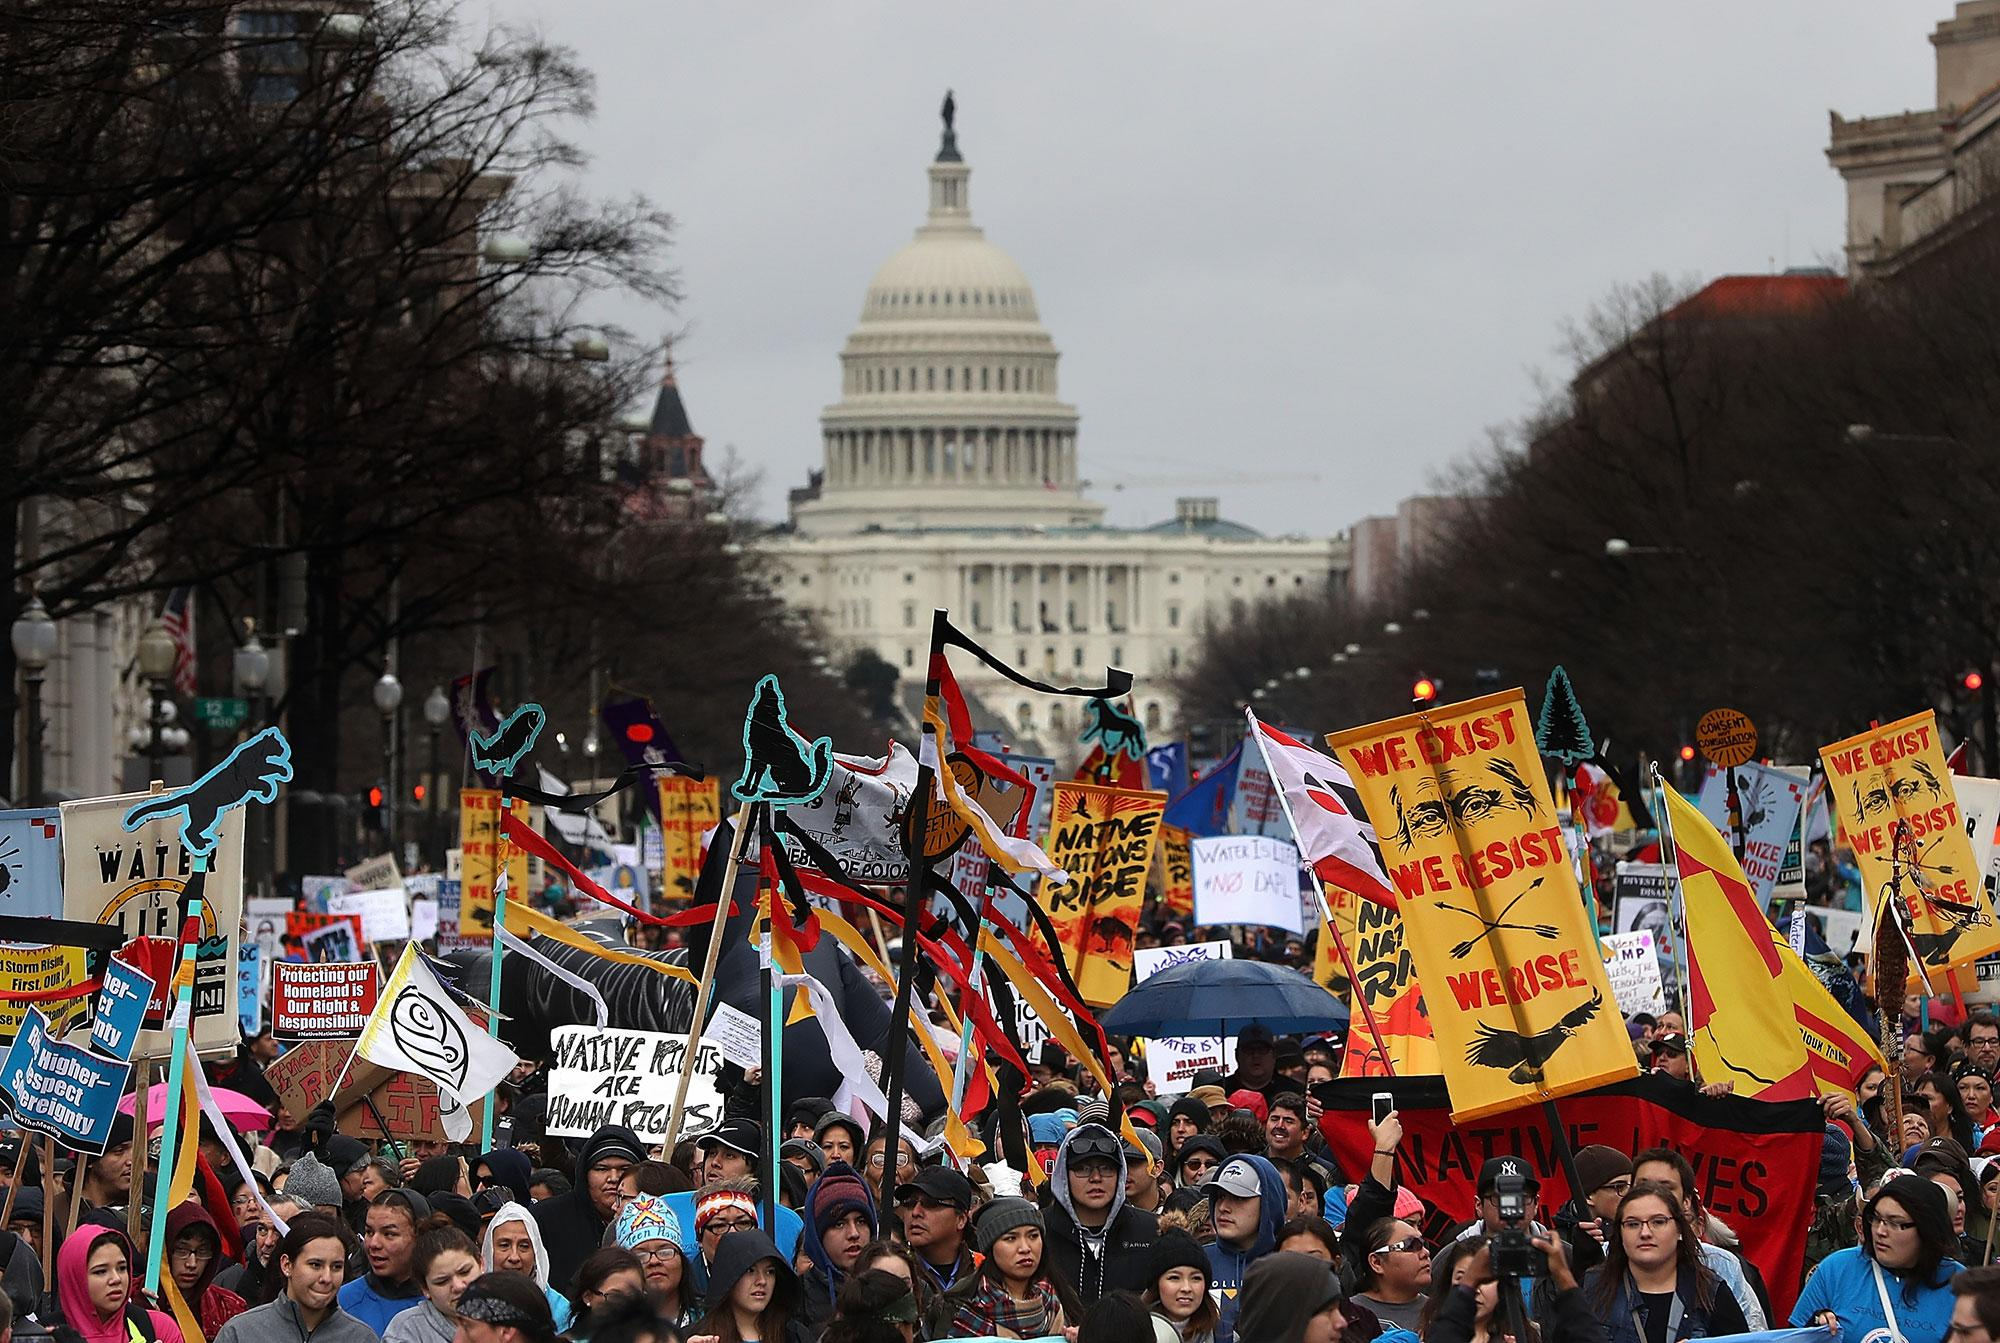 <p>Protesters march during a demonstration against the Dakota Access Pipeline on March 10, 2017 in Washington, DC. Thousands of protesters and members of Native nations marched in Washington DC to oppose the construction of the proposed 1,172 Dakota Access Pipeline that runs within a half-mile of the Standing Rock Sioux reservation in North Dakota. (Justin Sullivan/Getty Images) </p>